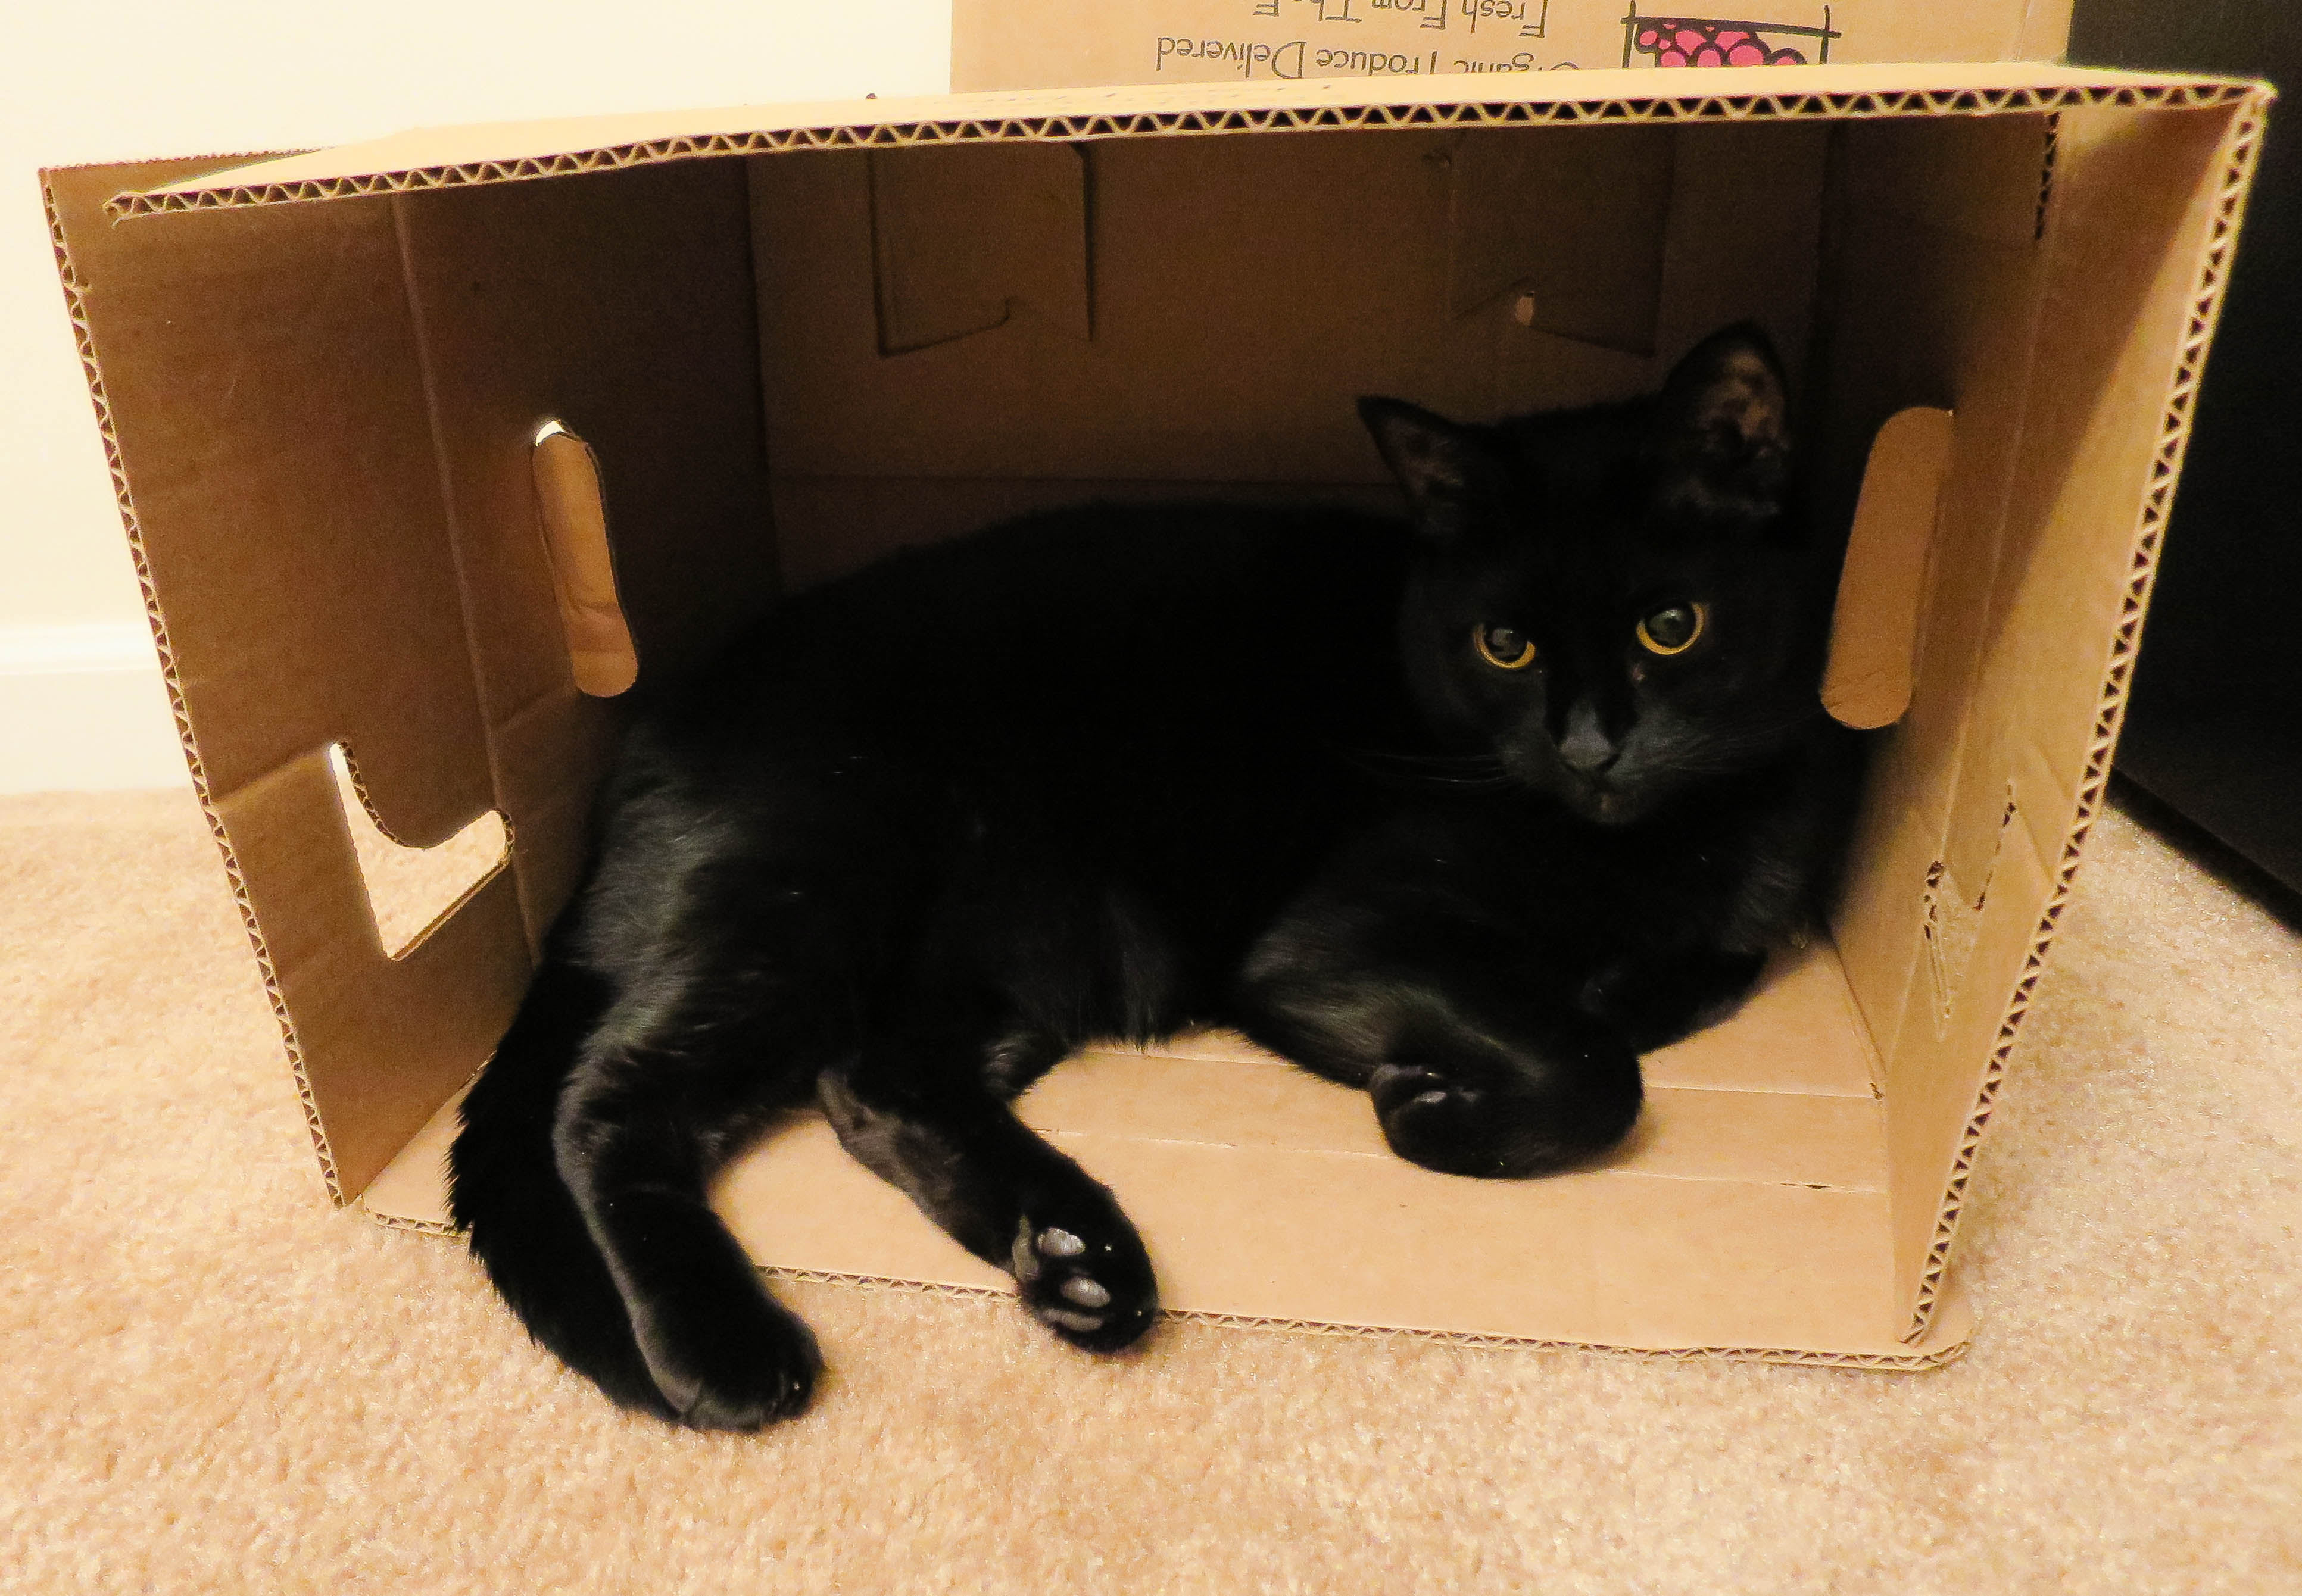 black cat friday the ultimate in low carb cooking gifts. Black Bedroom Furniture Sets. Home Design Ideas